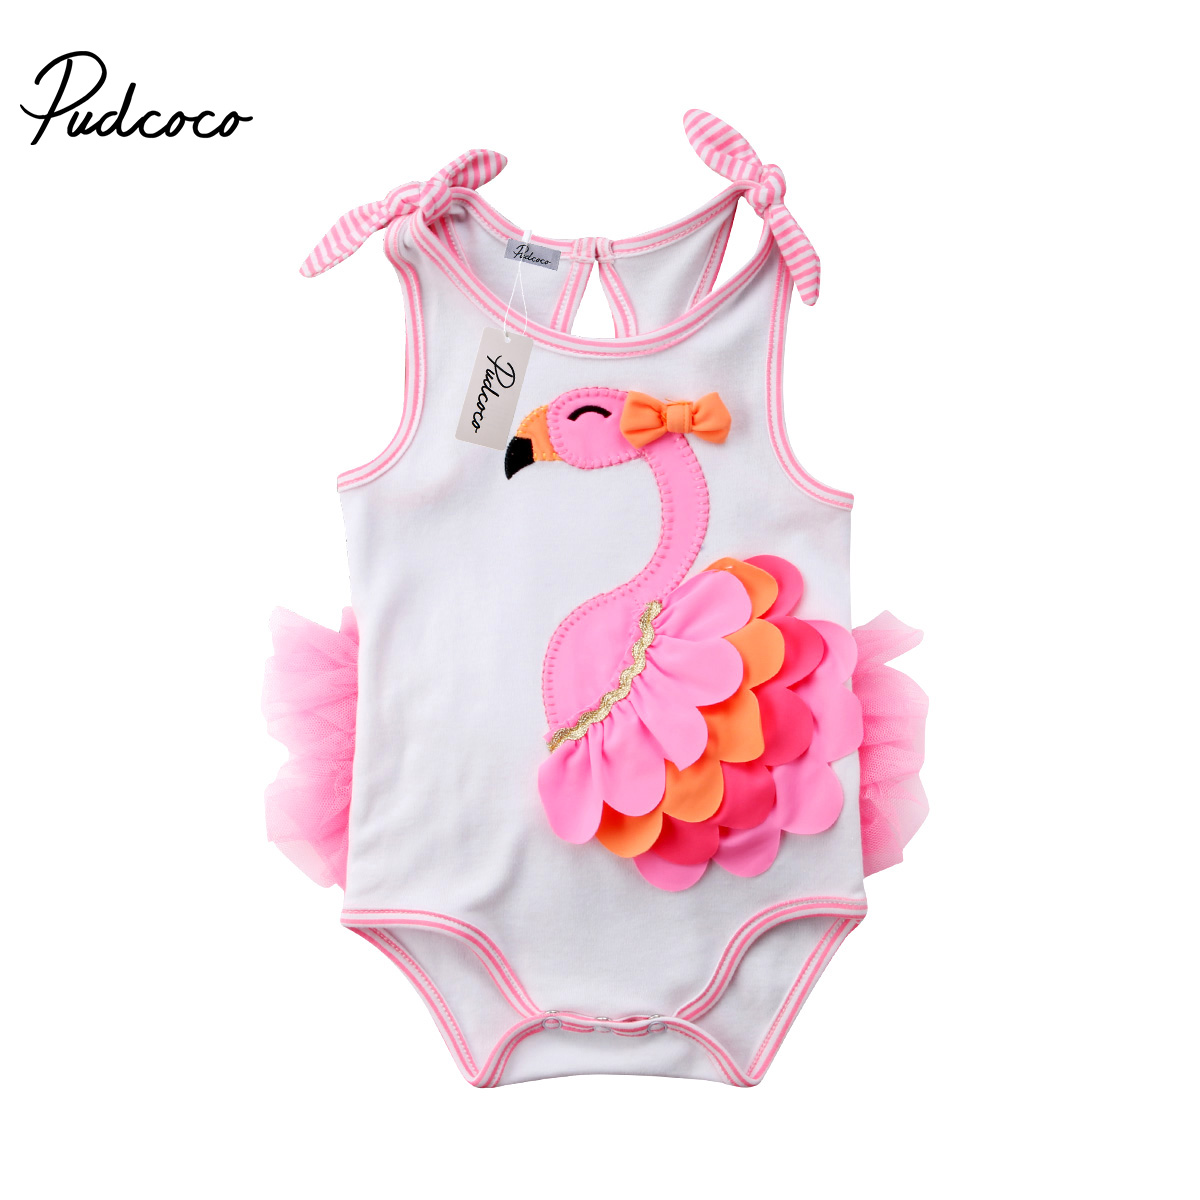 Newborn Infant Kids Baby Girl Flamingo Summer Romper Jumpsuit Playsuit Clothes A